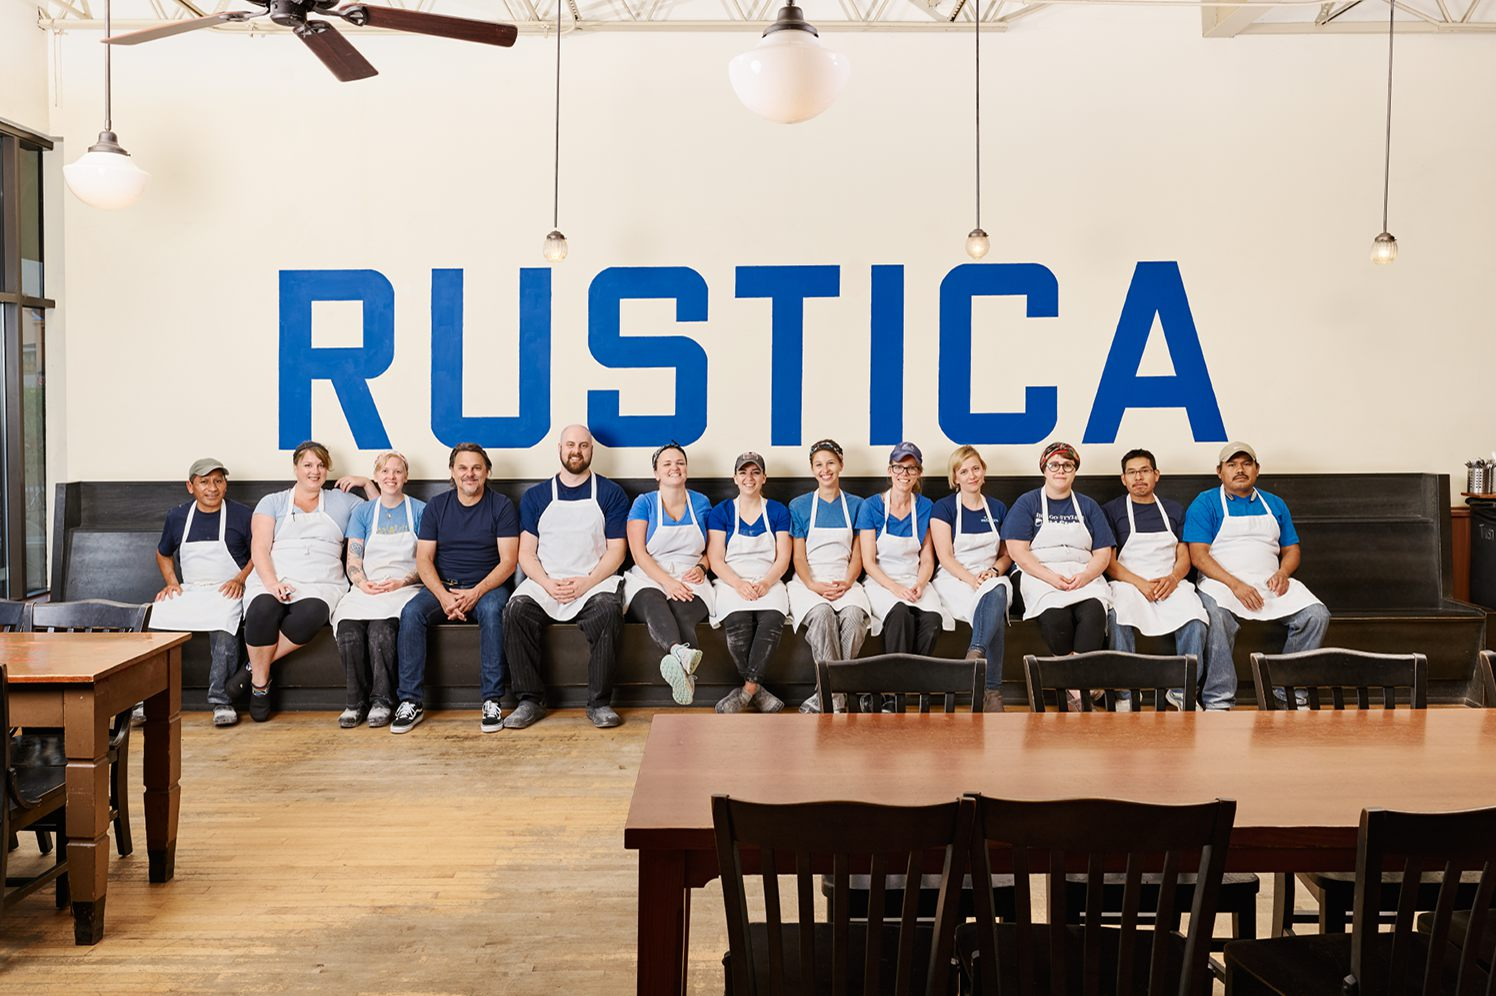 Square payroll customer, Rustica bakery